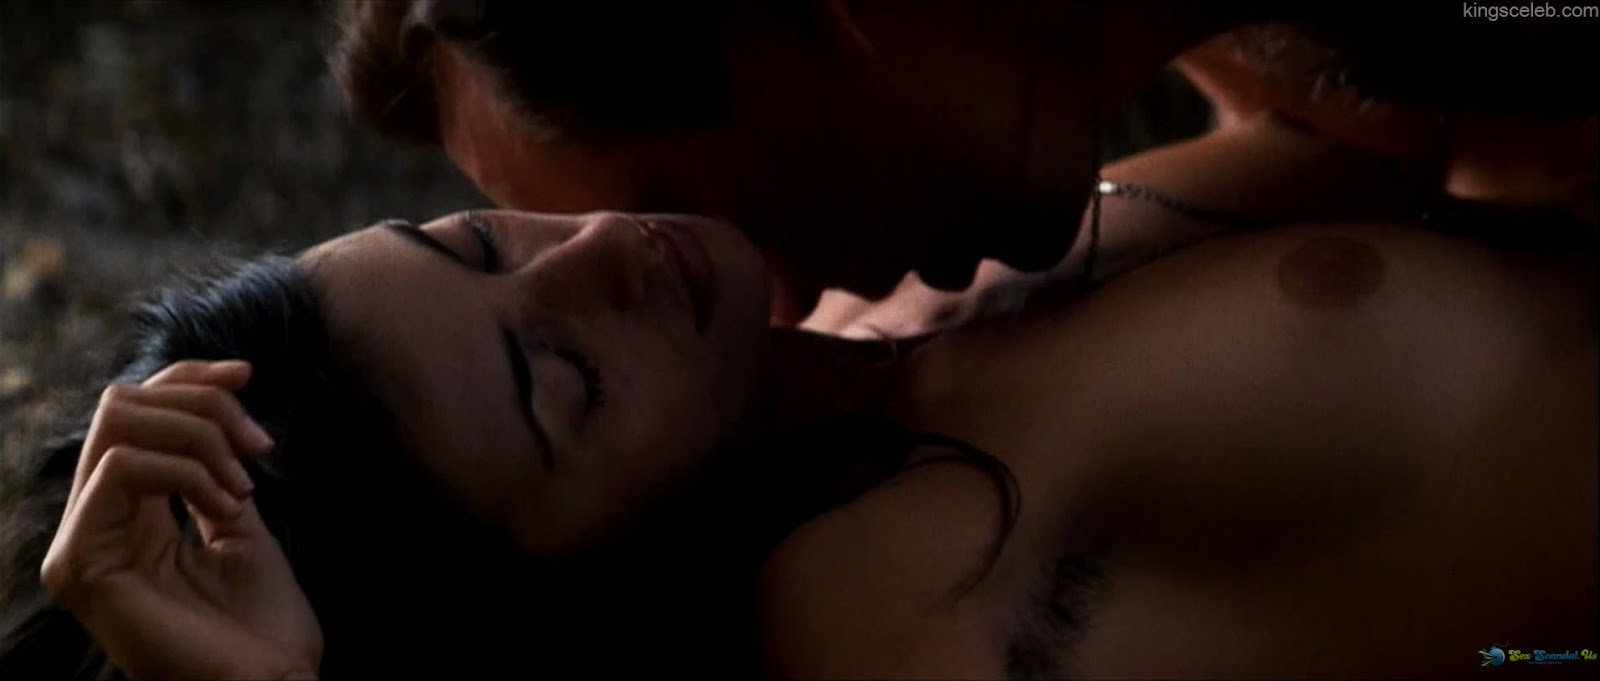 Penelope cruz sex tape